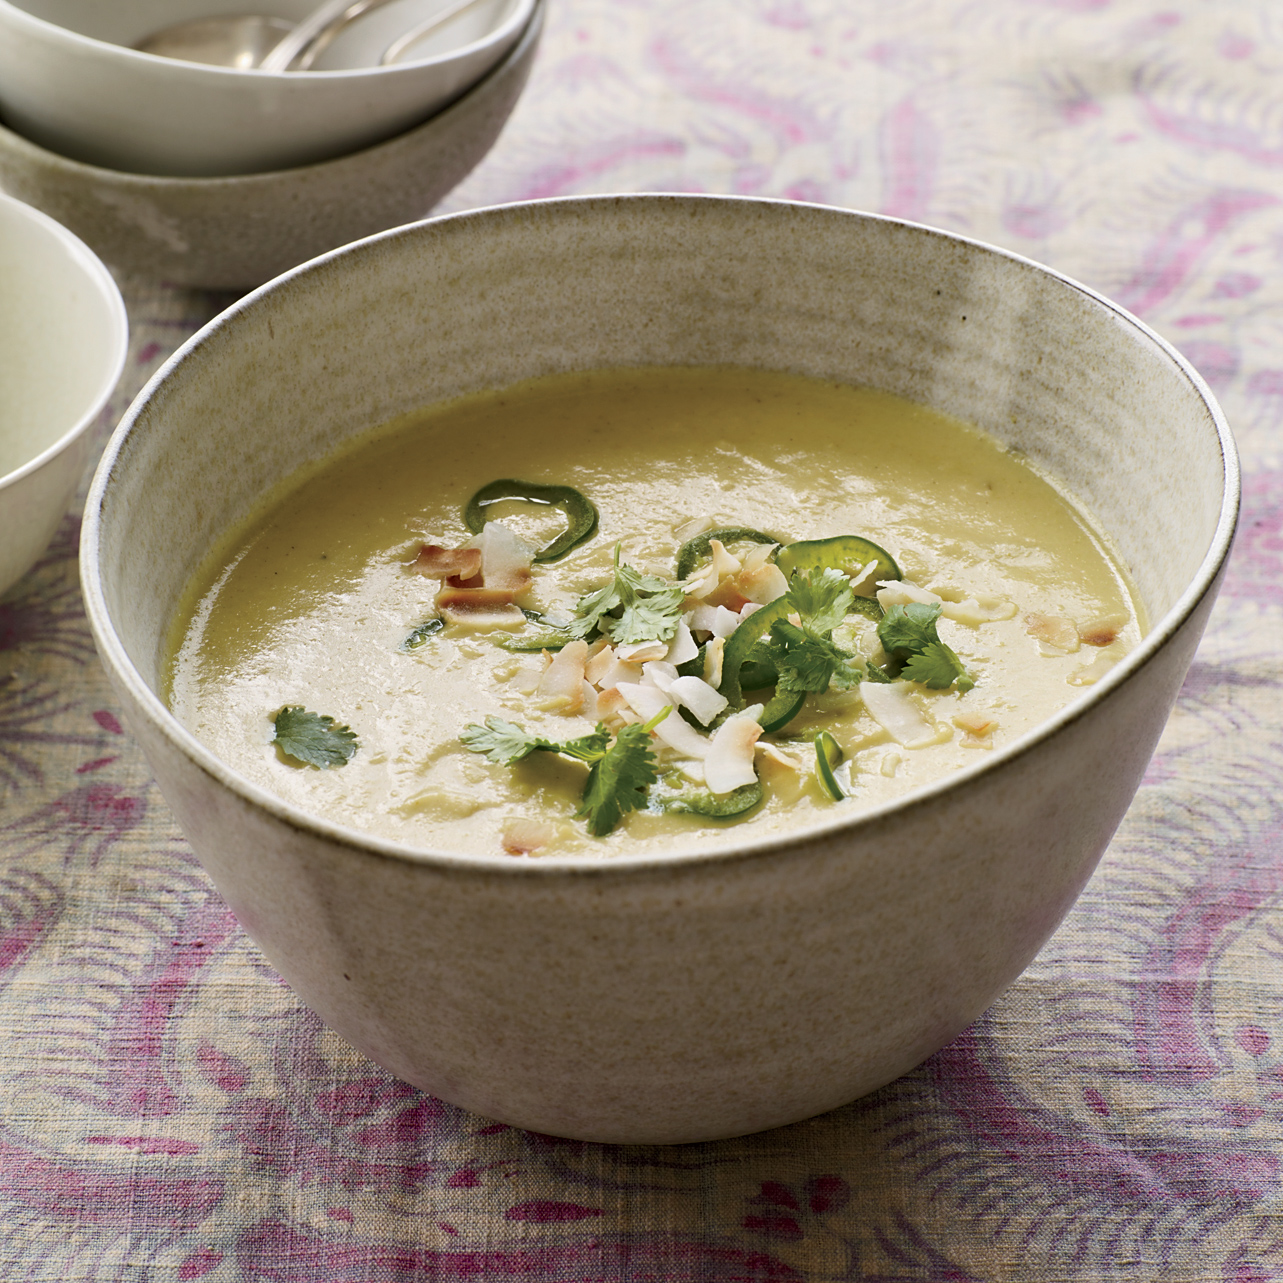 images-sys-201201-r-curried-cauliflower-soup-with-coconut-and-chiles.jpg